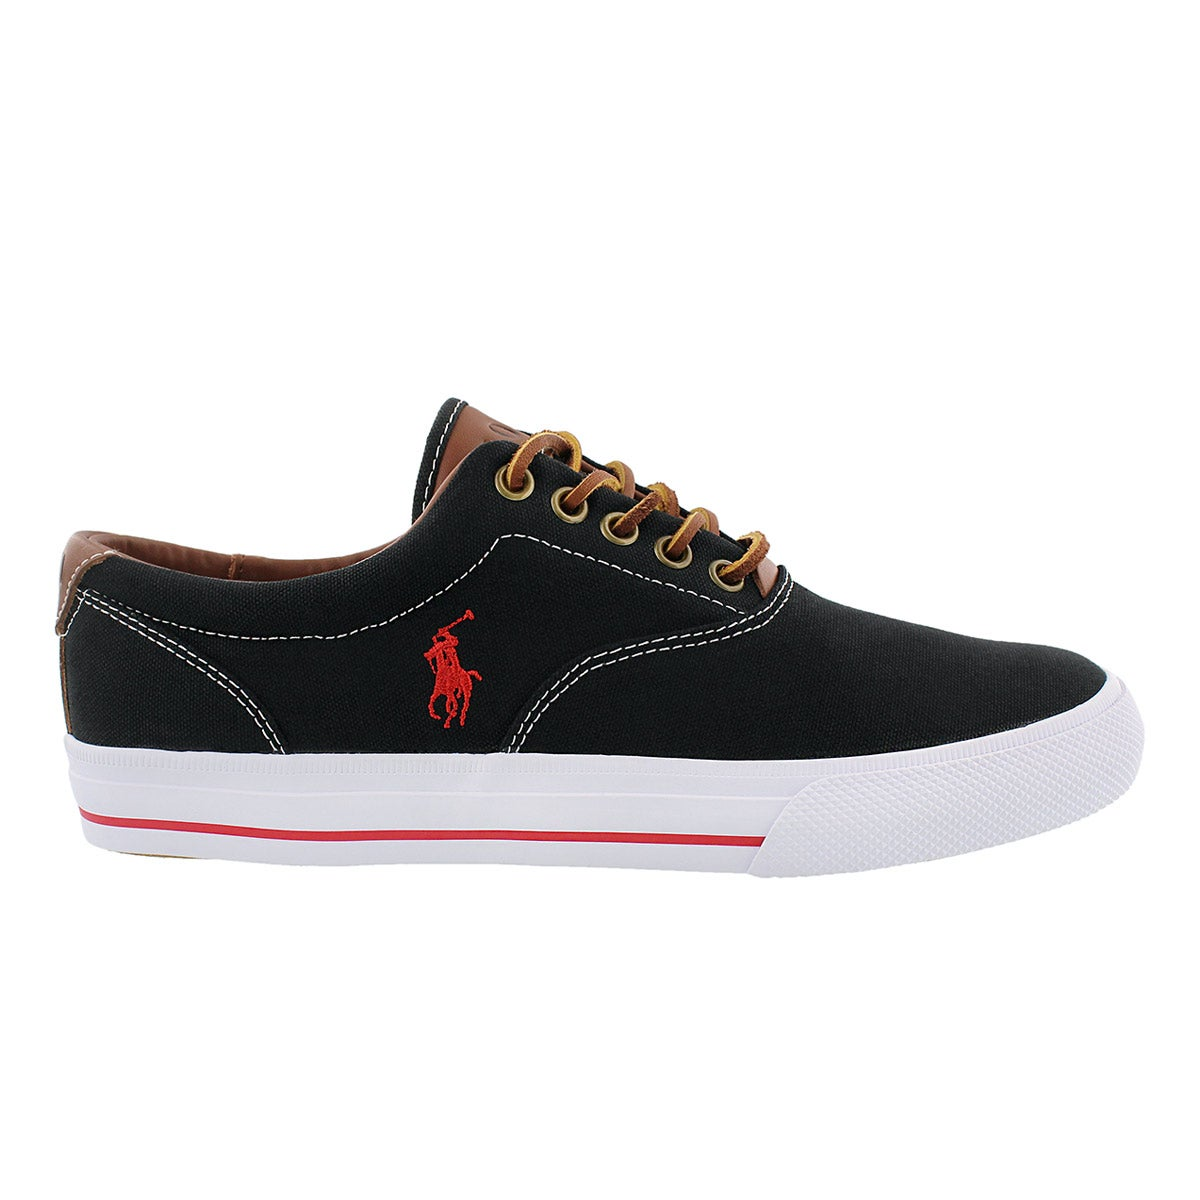 Mns Vaughn blk casual canvas sneaker